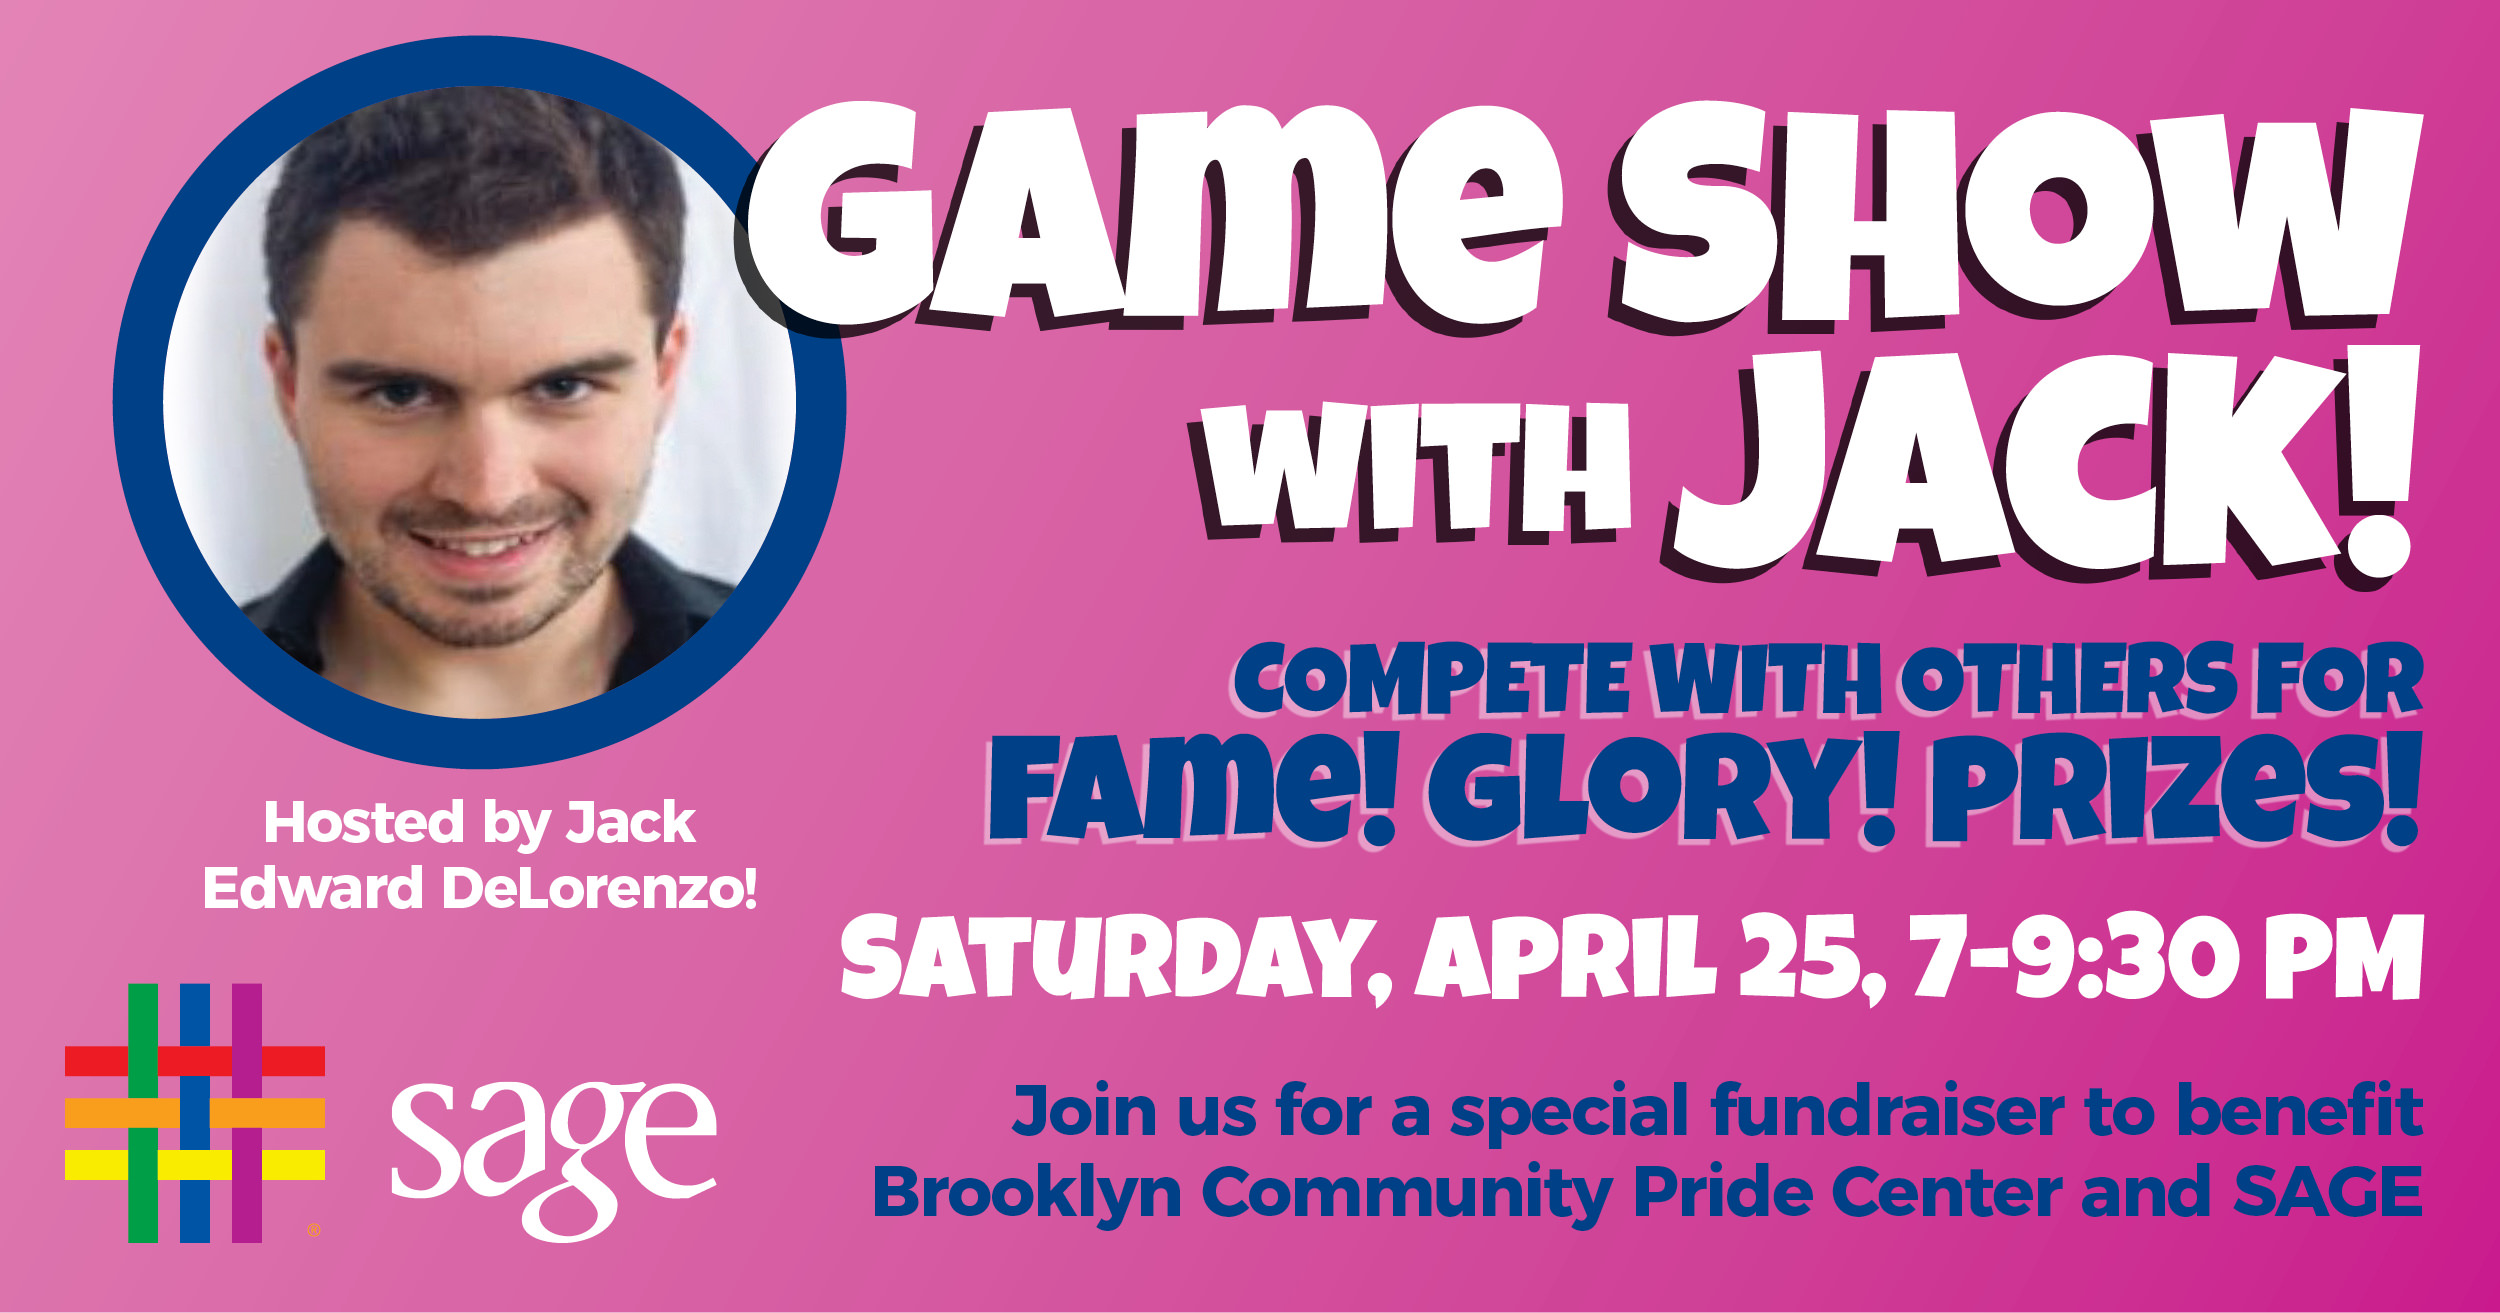 Game Show with Jack! at Brooklyn Community Pride Center